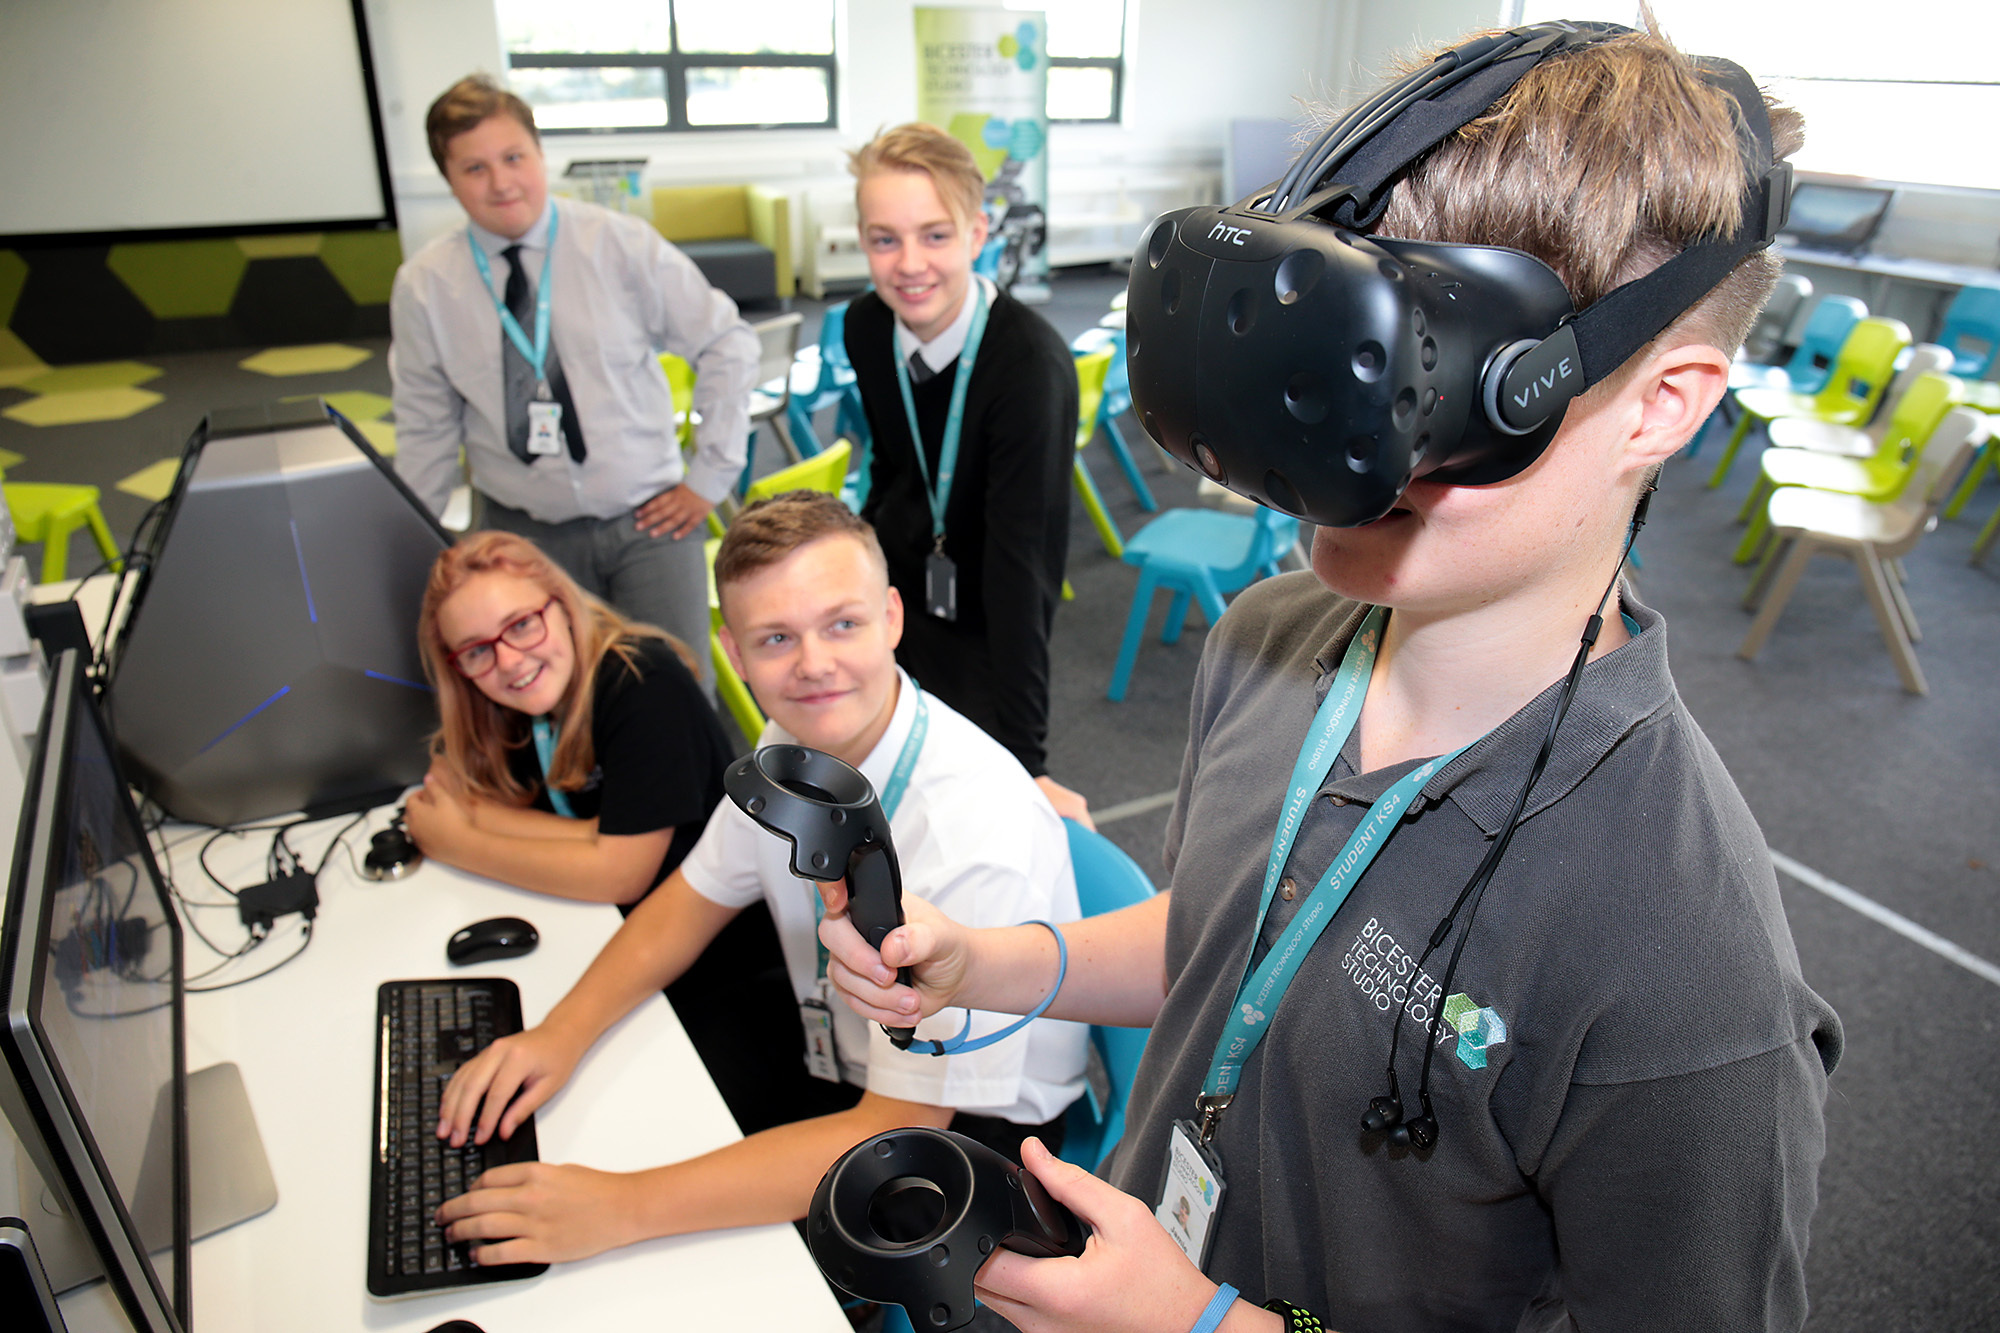 Students Sean Bewley, Annie Clarke, Ben Gray and Stuart Dann setting up a Virtual Reality experience for Jamie Durow at the start of an open day at Bicester Technology Studio .Picture: Ric Mellis.9/9/2018.